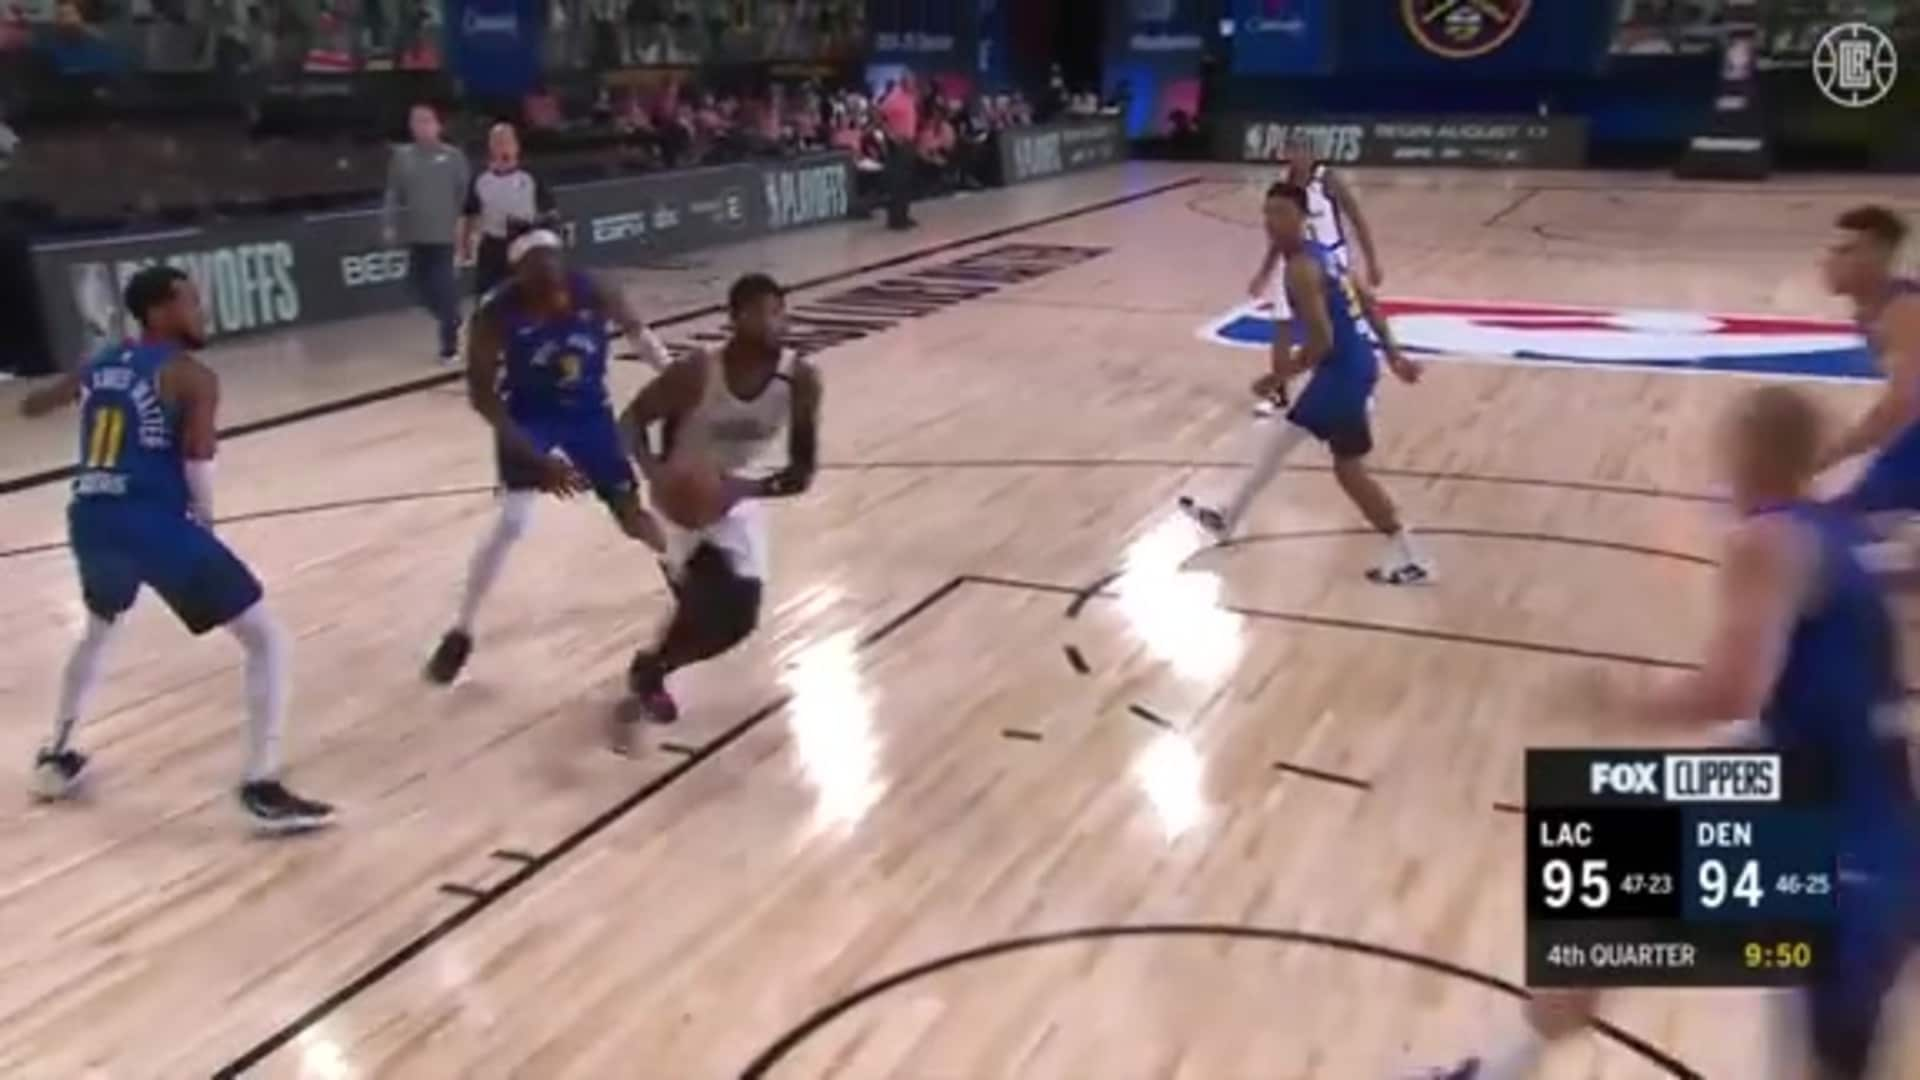 Lou Williams Hands Off Ball to Paul George for the Jam   (08.12.20)